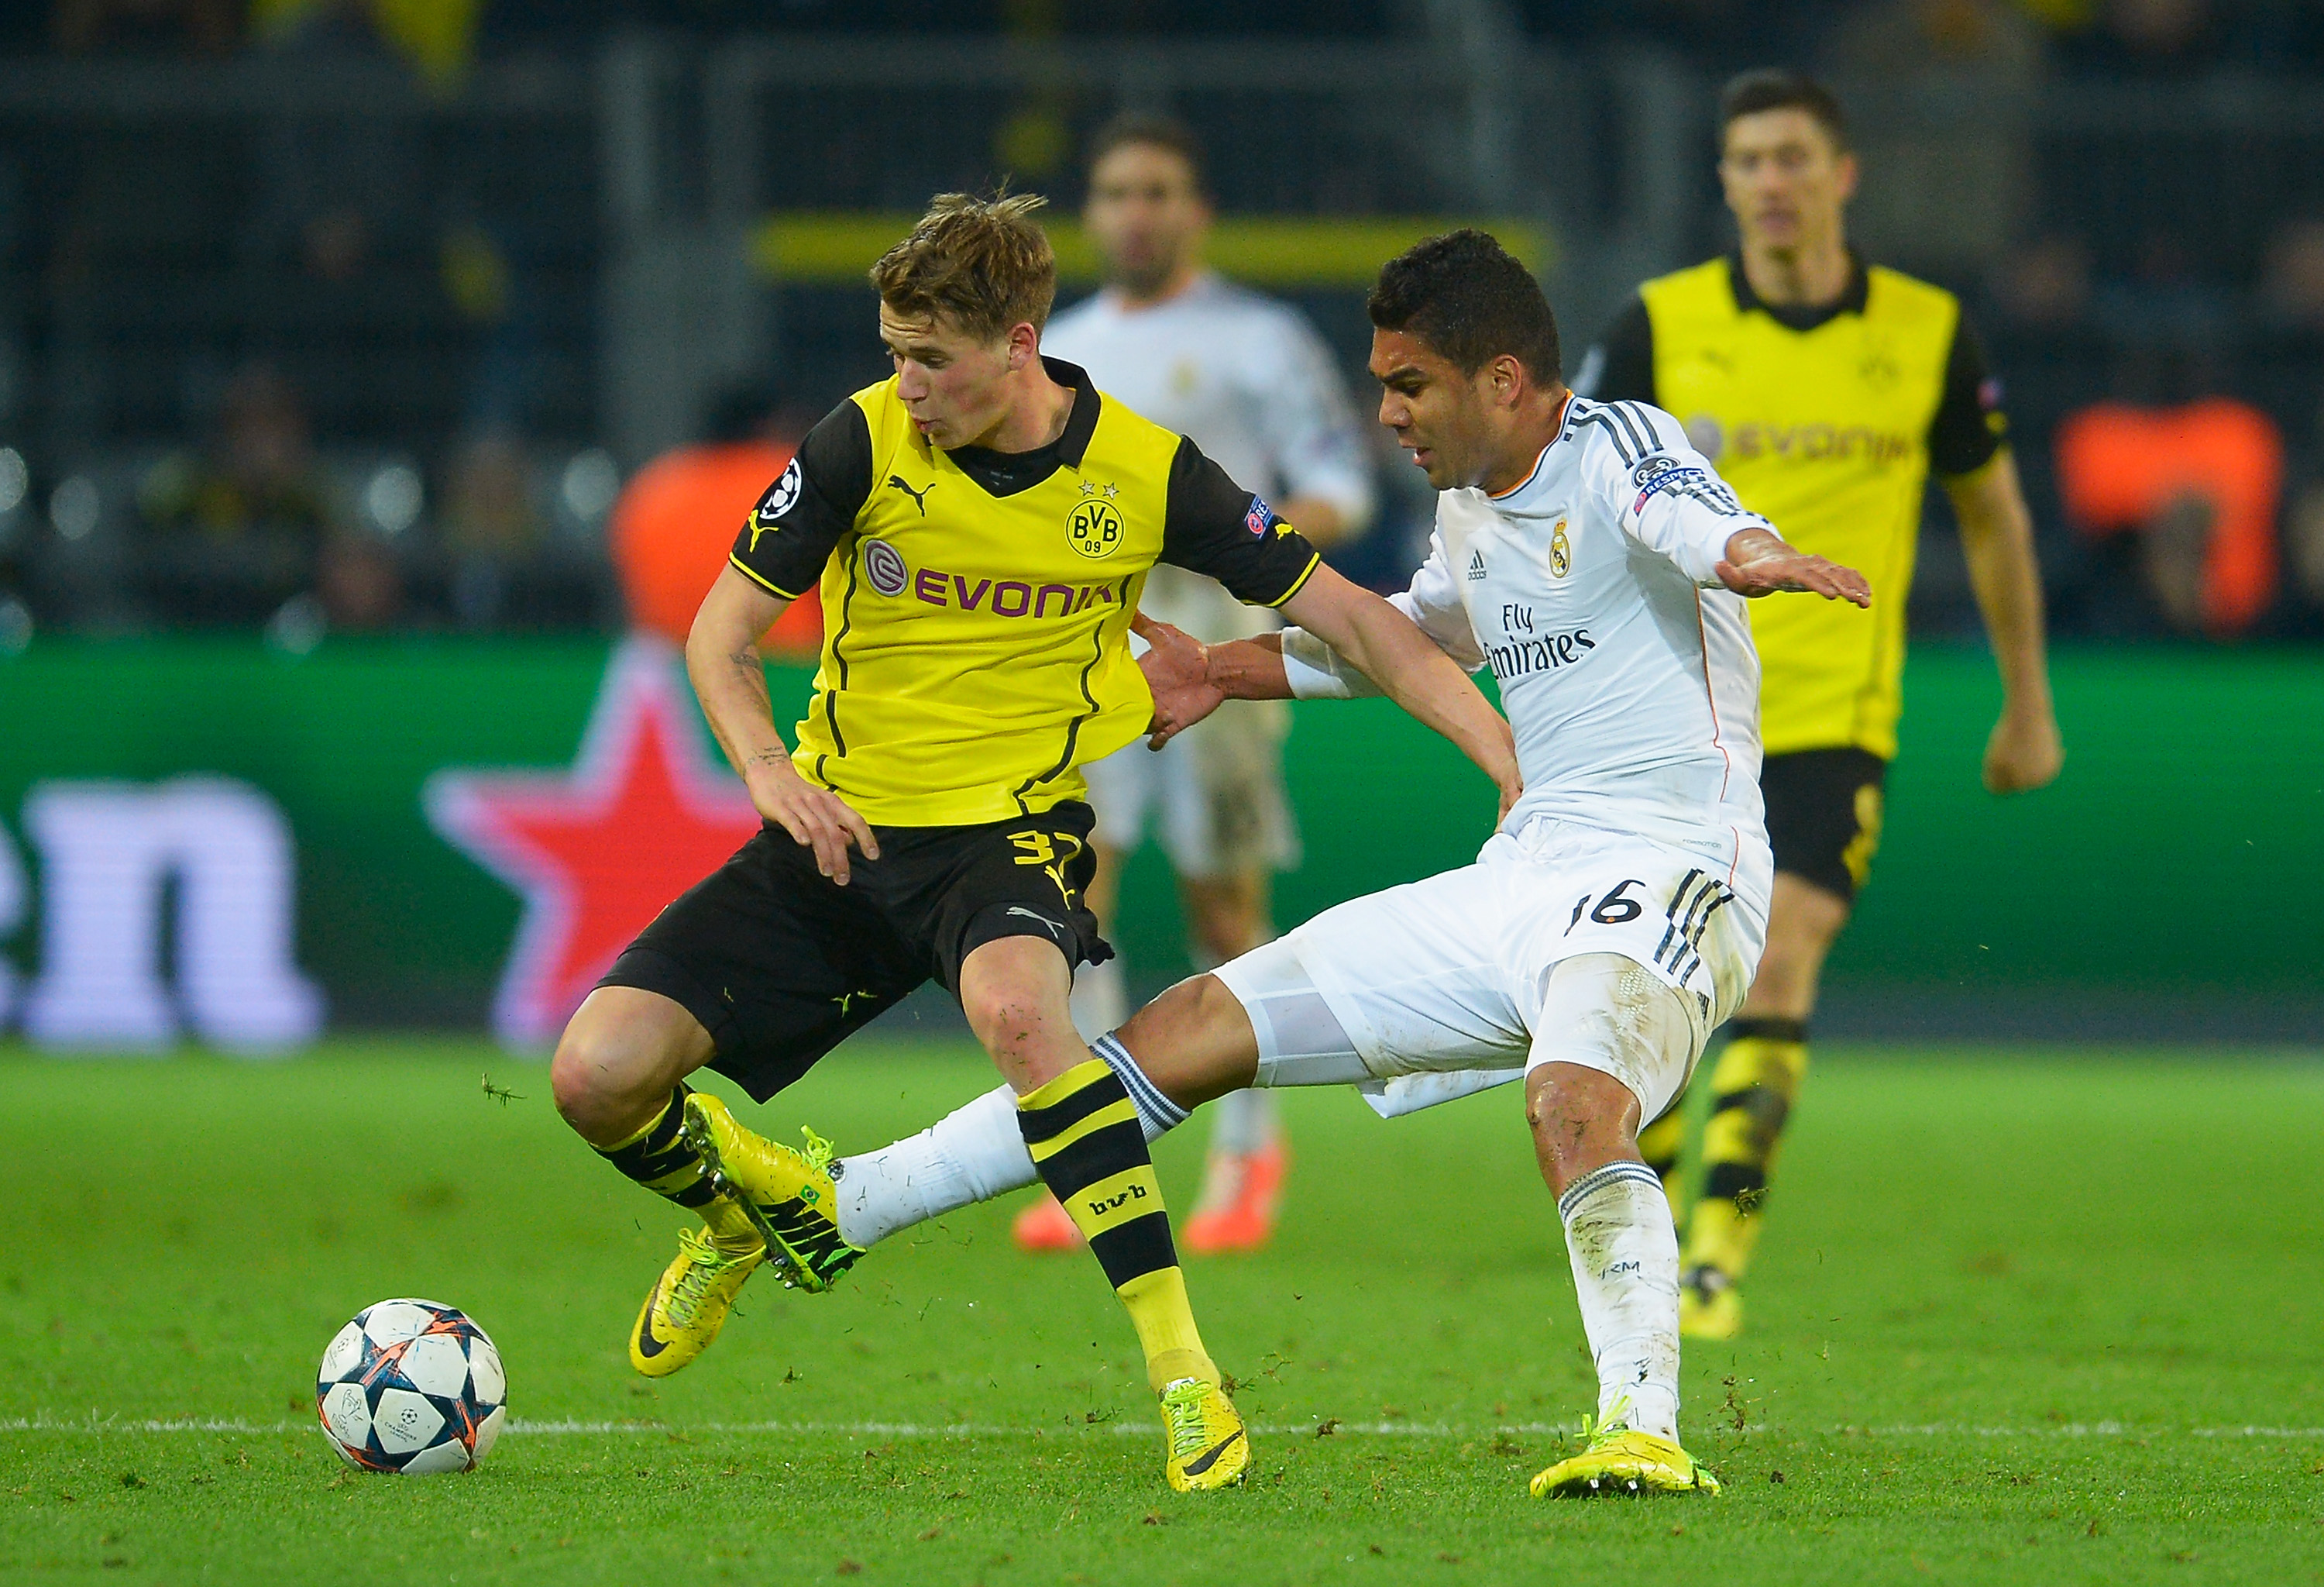 Real Madrid and Dortmund draw 2-2 in pulsating match